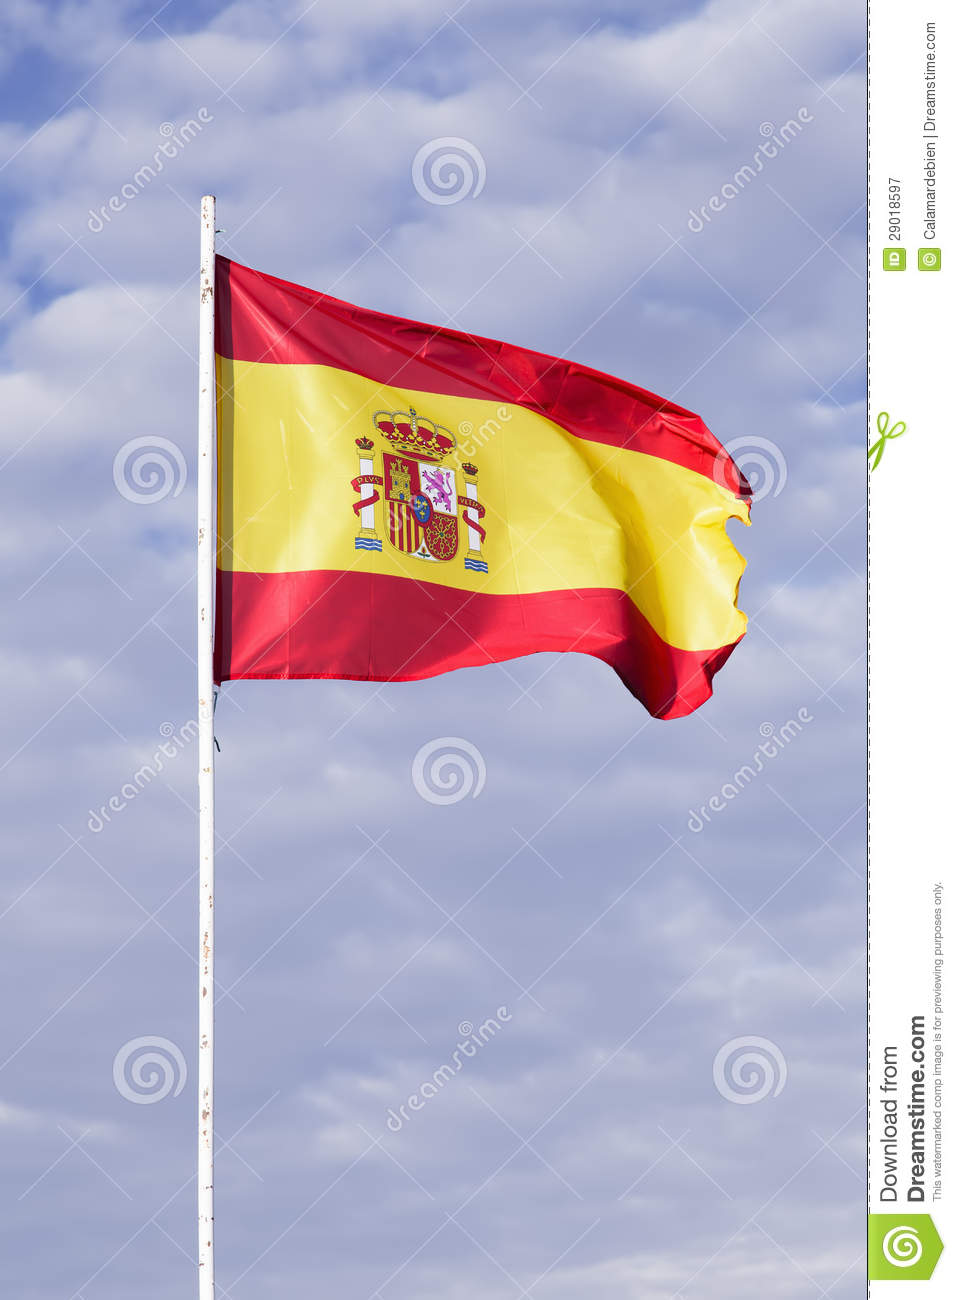 spanish flag waving in the wind royalty free stock photography